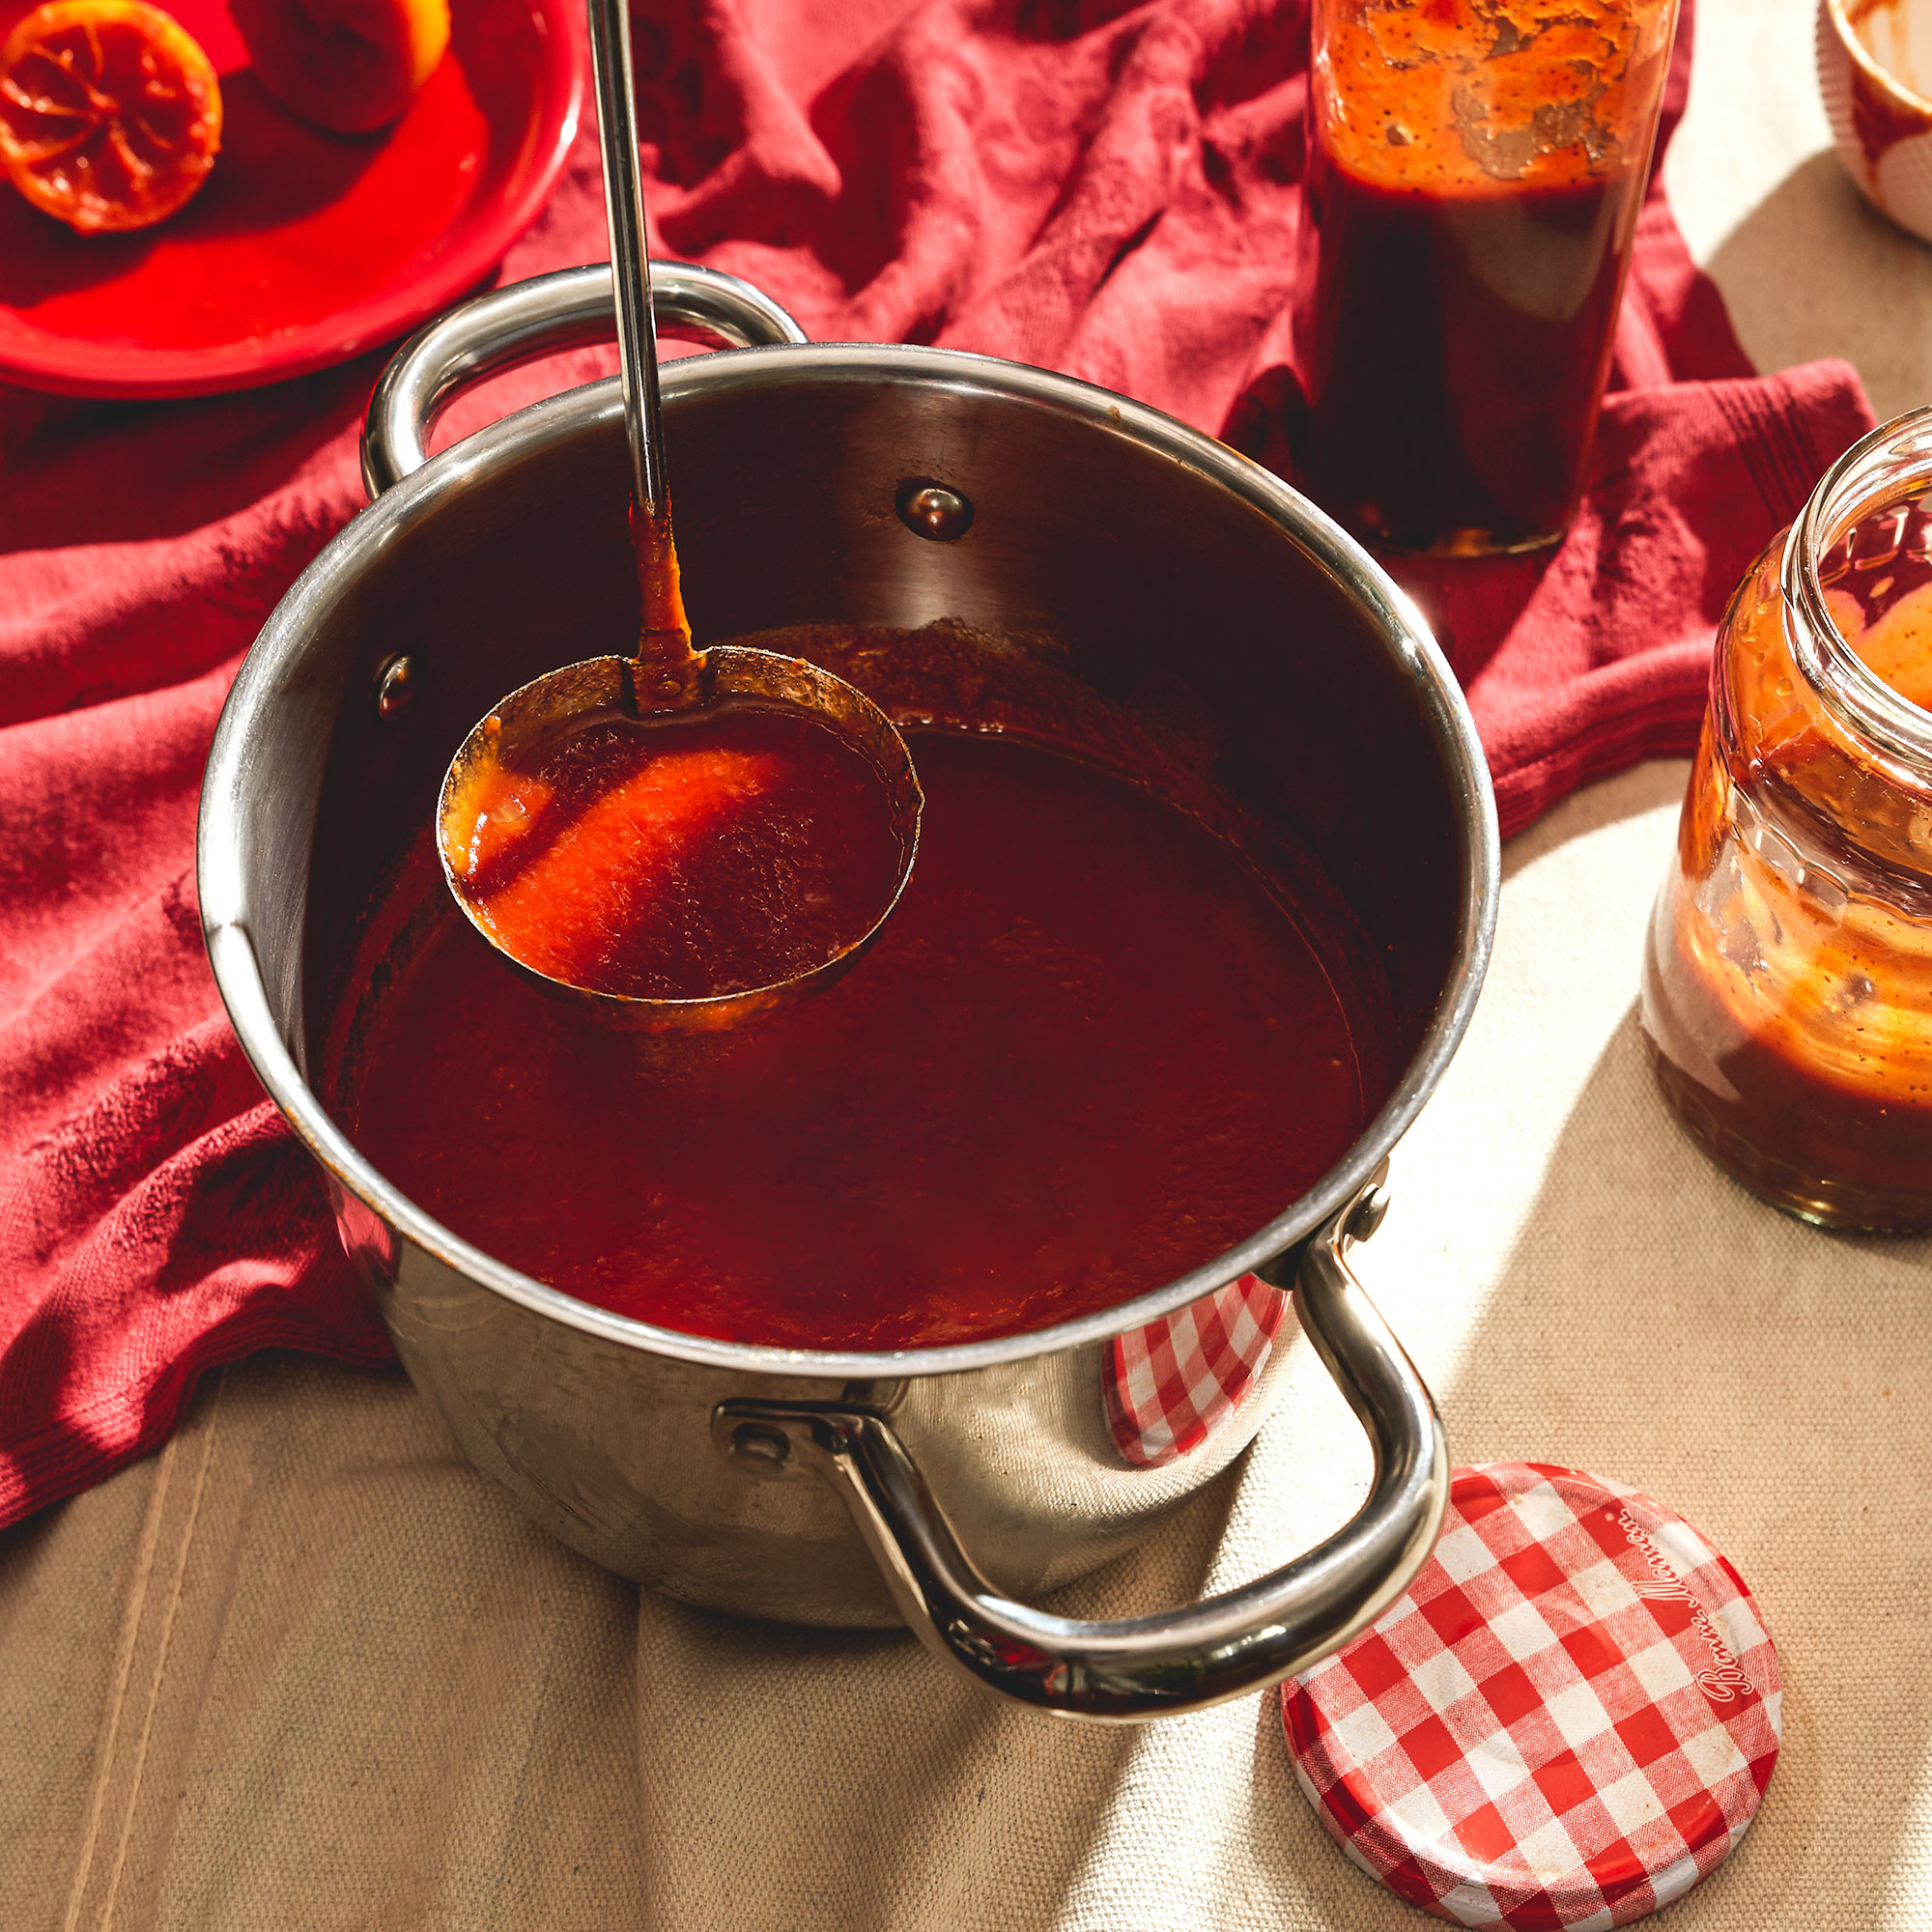 A pot of homemade barbecue sauce with jars of sauce